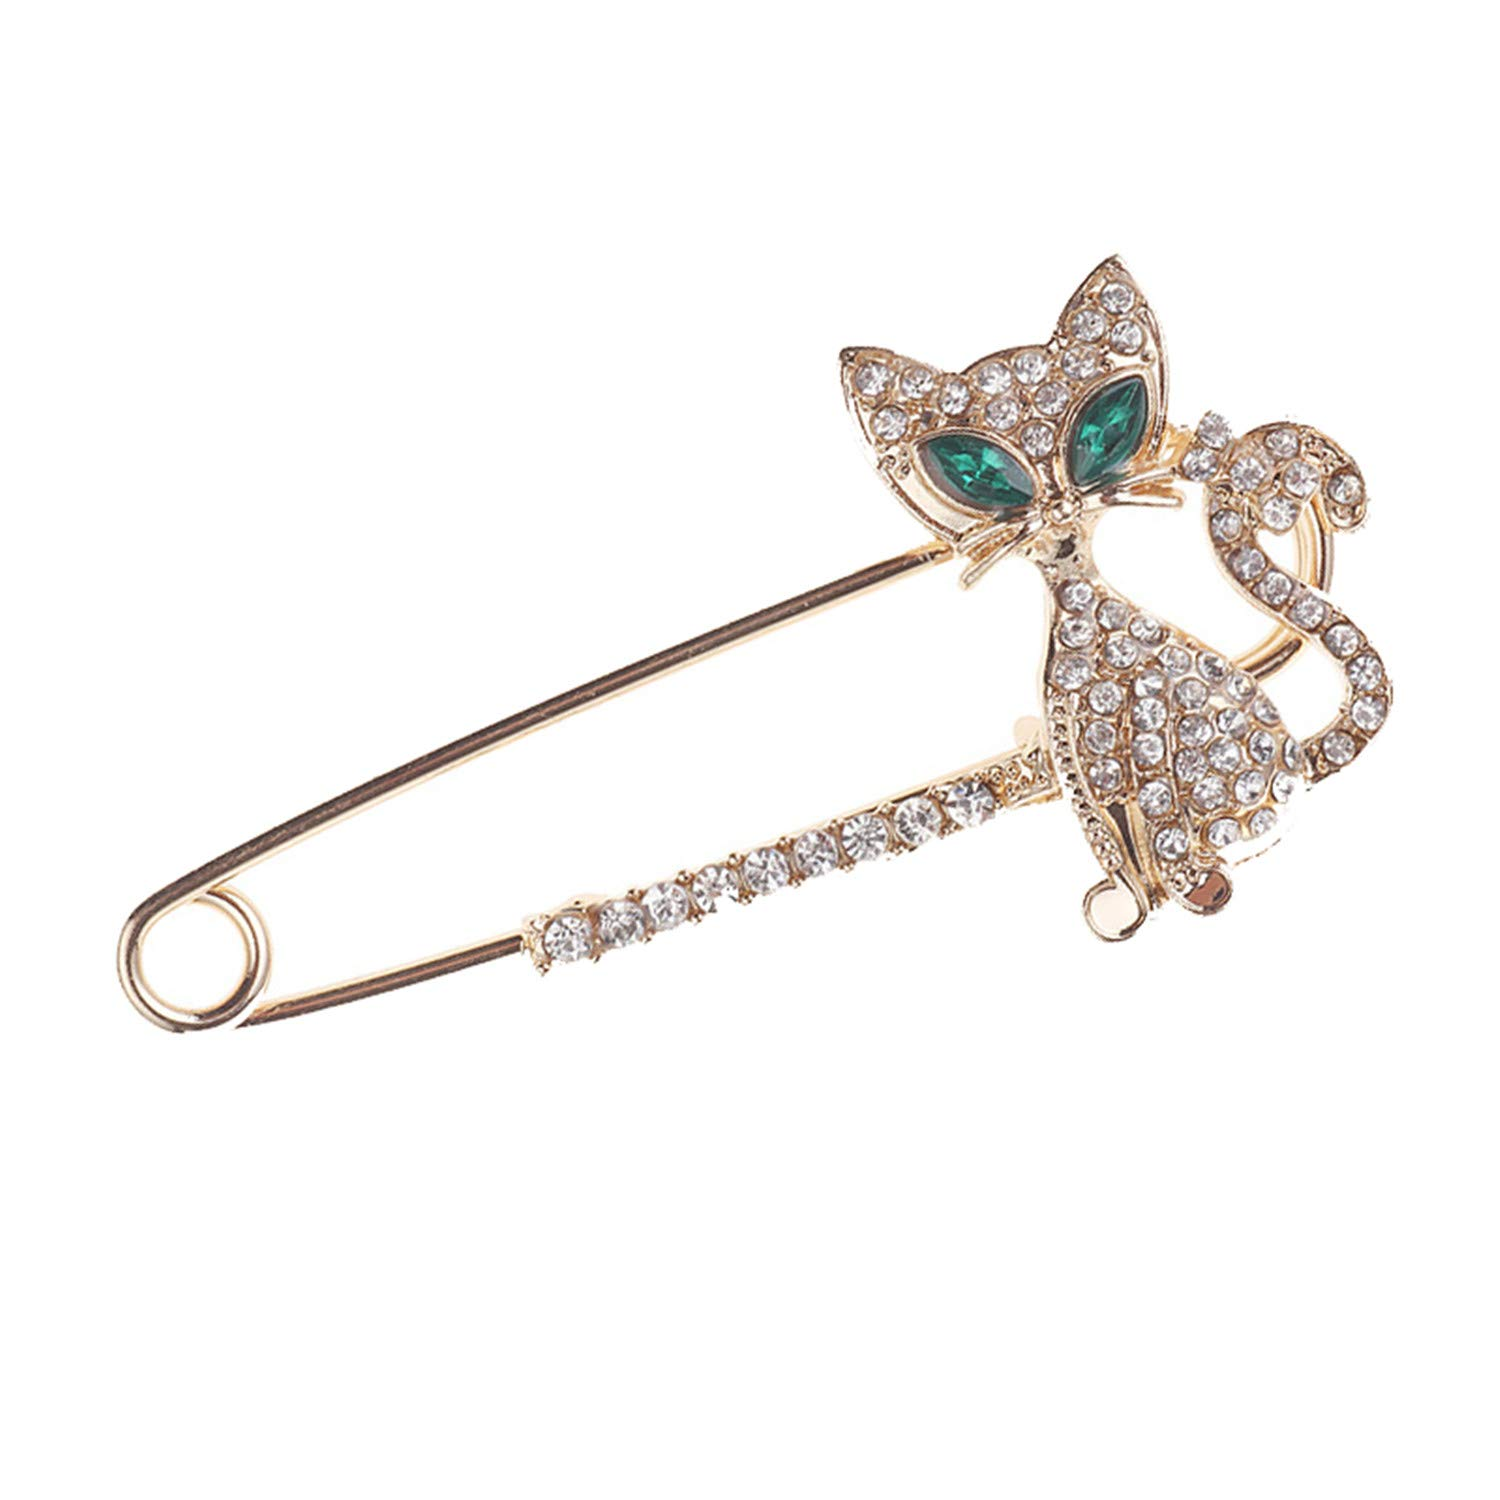 Pins Rose Pin Brooch Rhinestone Women Men Brooches for Suit Scarves Corsage Sweater Collar